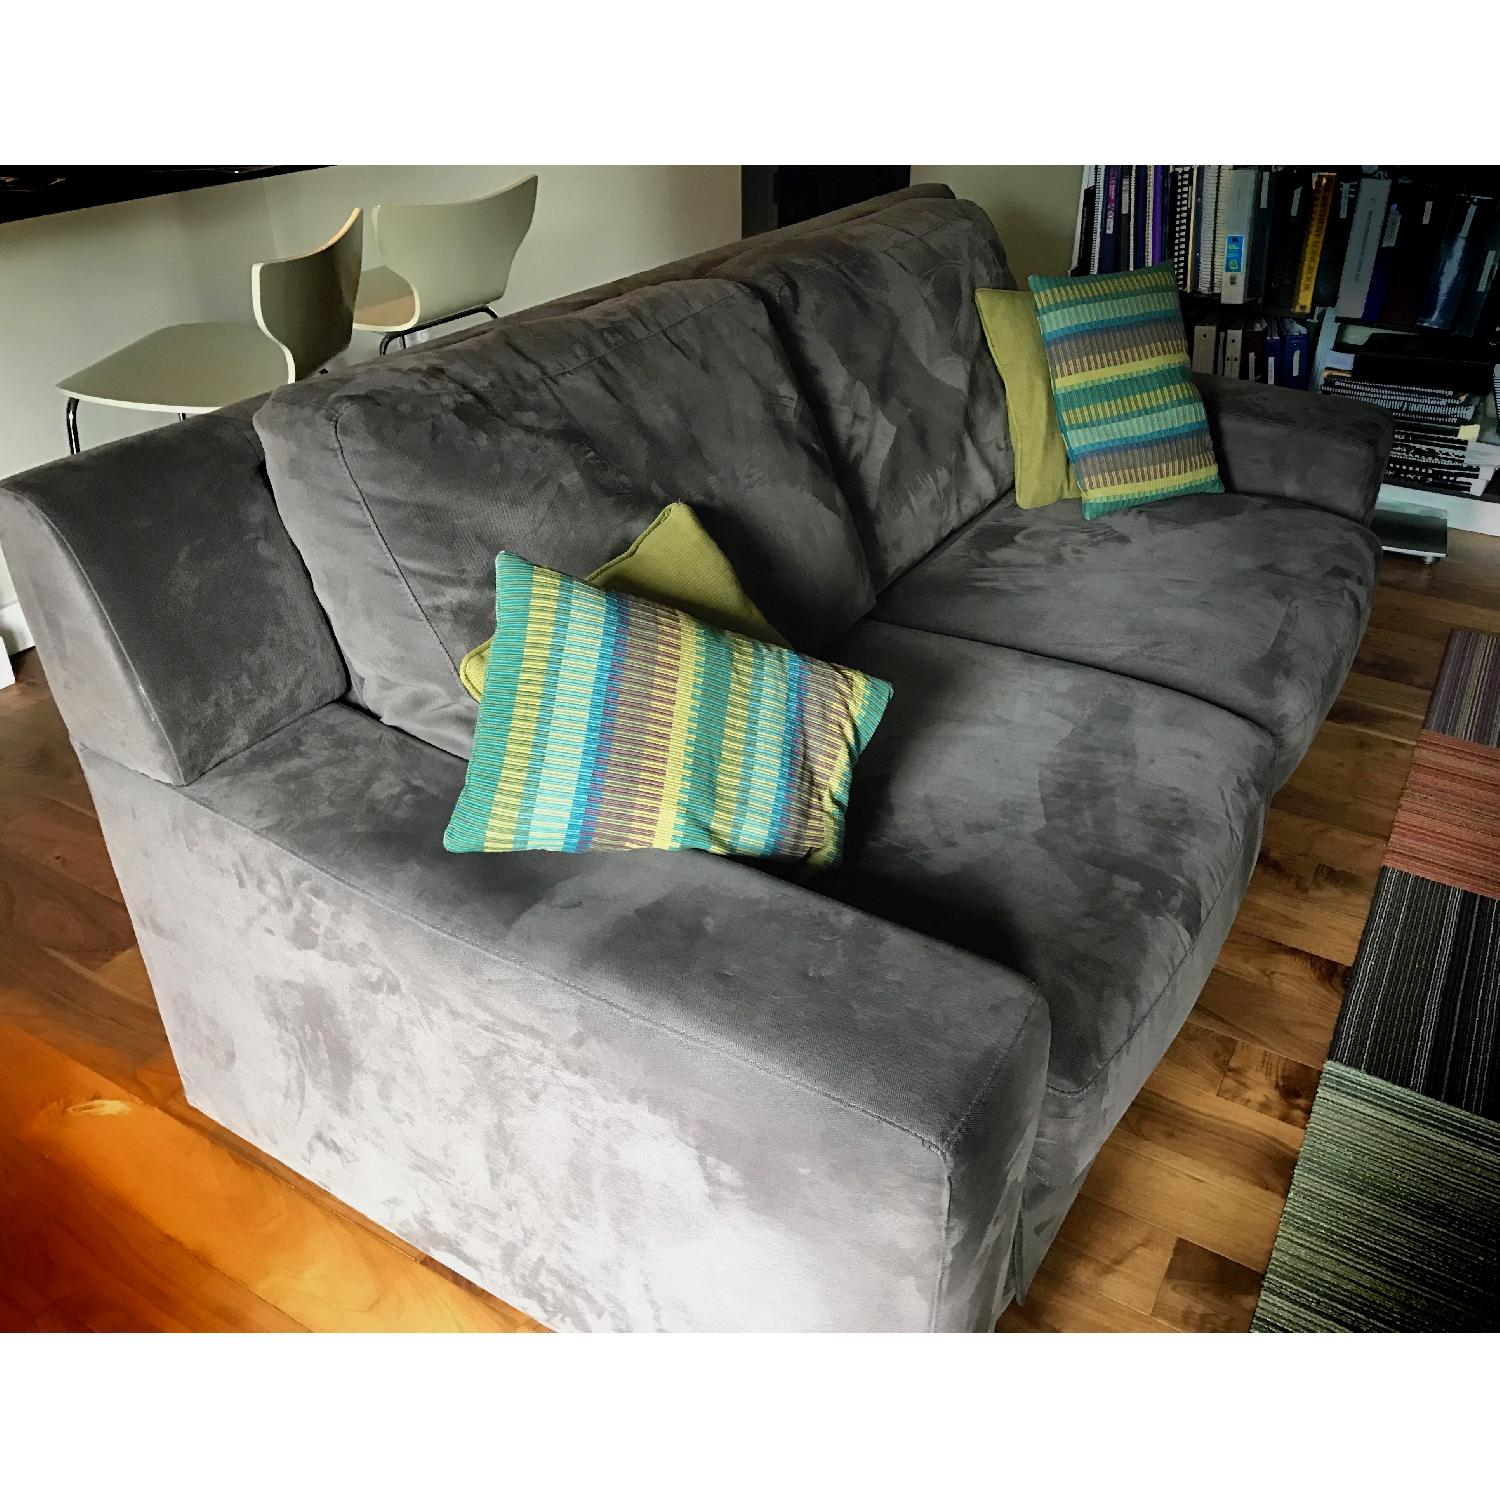 Crate & Barrel Winston Queen Size Comfort Sleeper Sofa - image-2